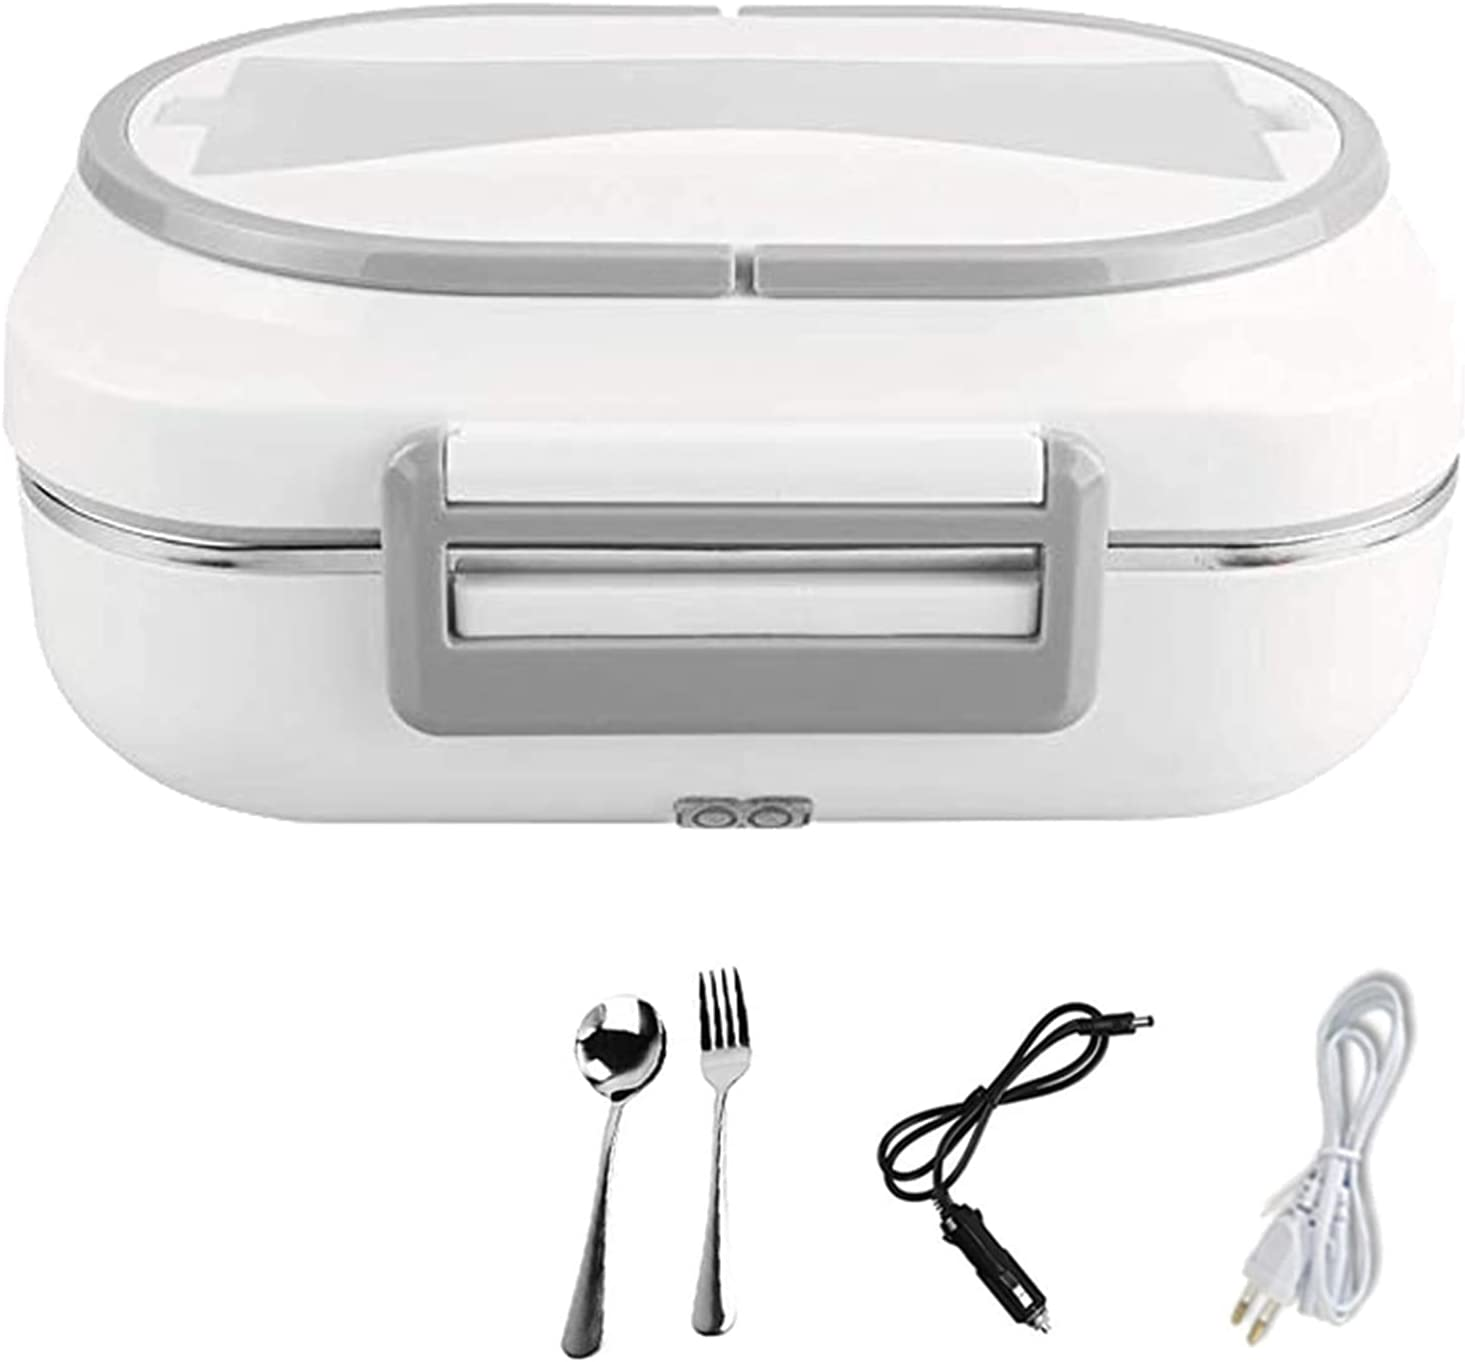 Suitable For Staff Students 12V Electric Stainles Ranking TOP6 220V Lunch Max 40% OFF Box